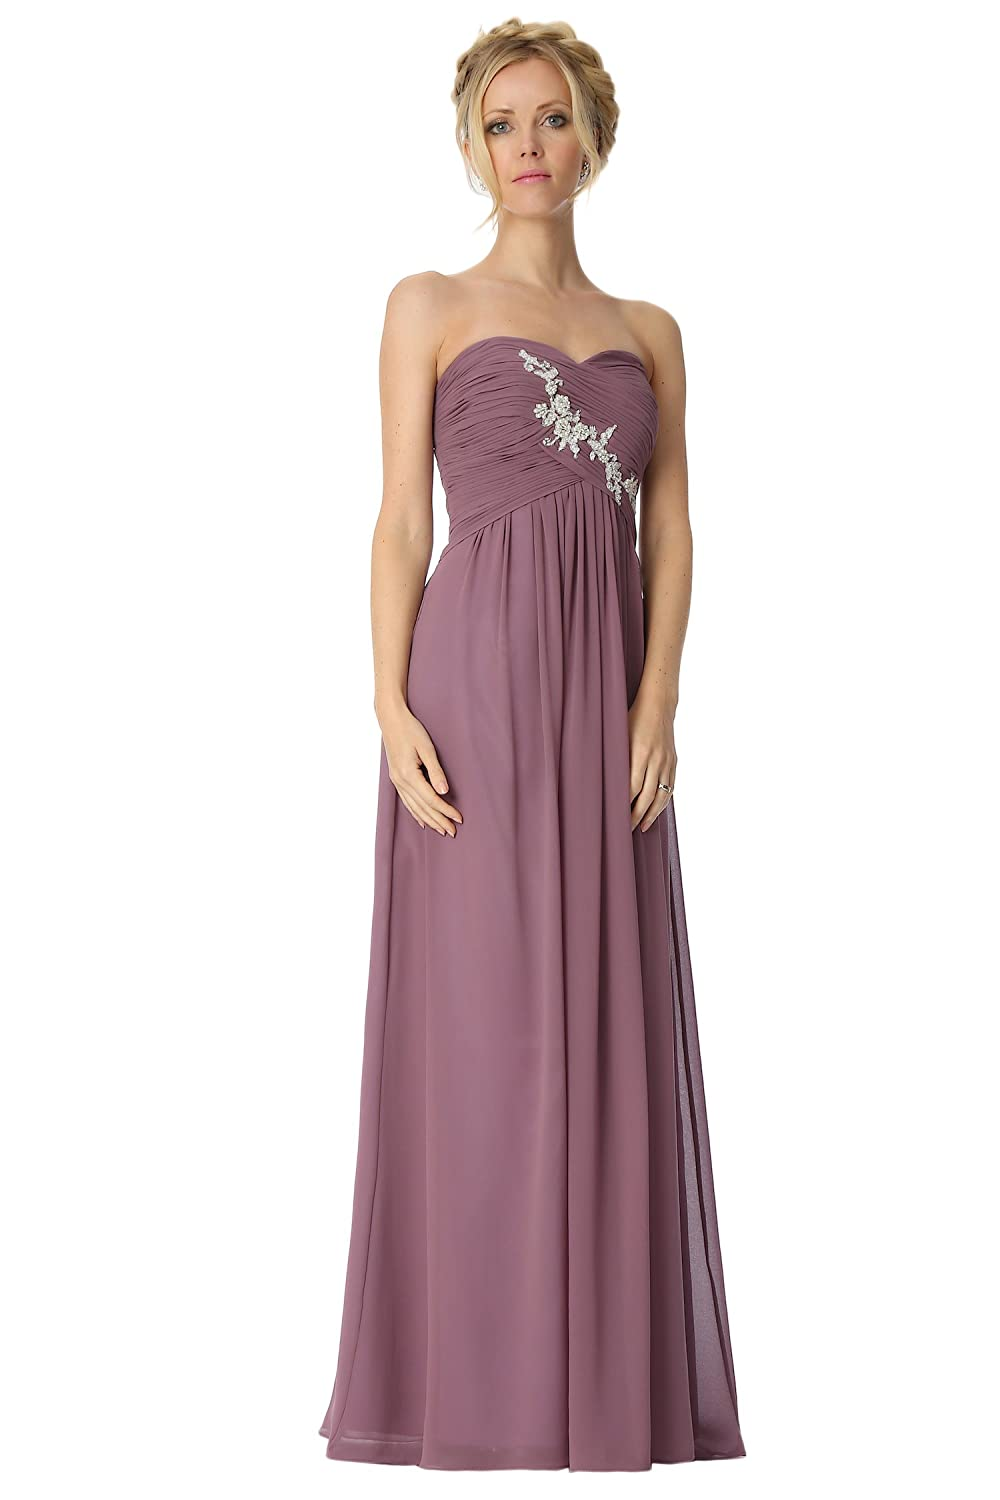 SEXYHER Strapless Criss-Cross ruching Bridesmaids Formal Evening Dress -EDJ1791